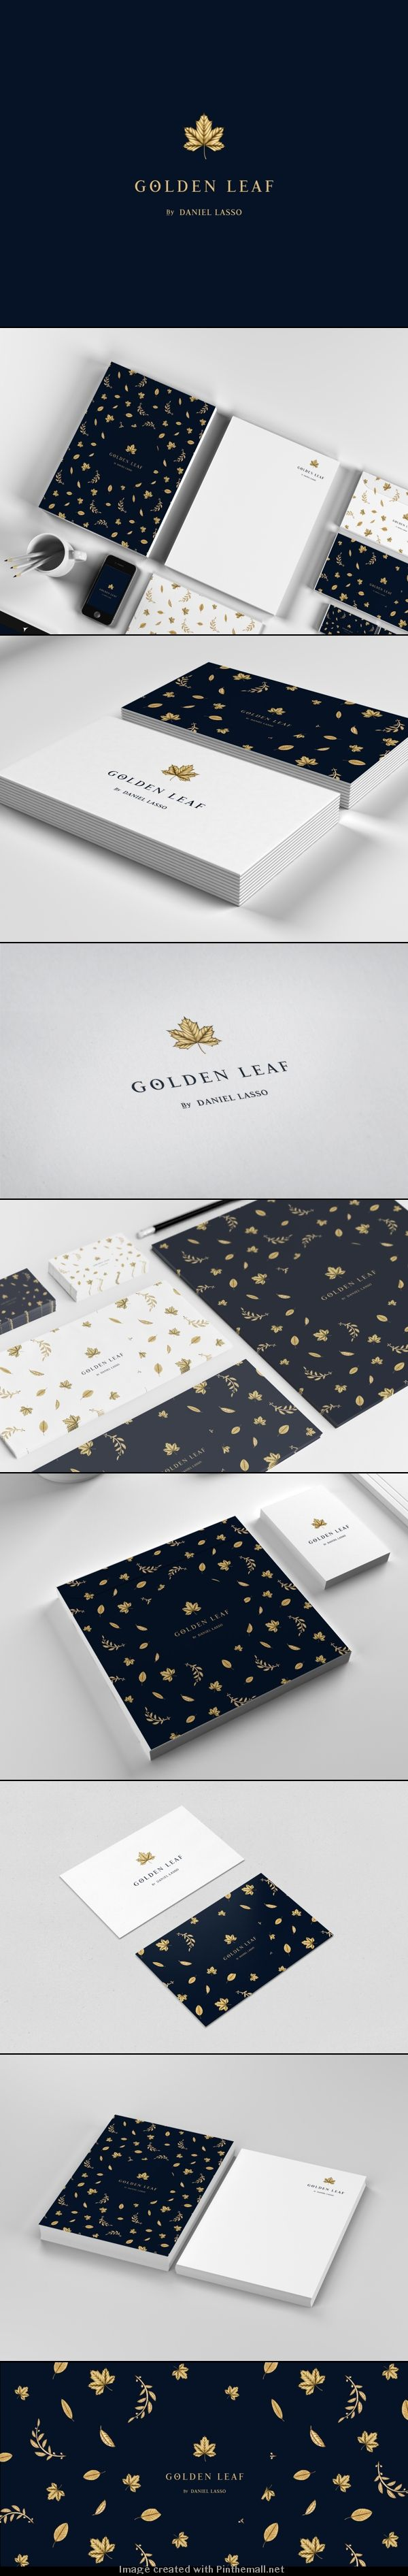 #branding Golden Leaf by Daniel Lasso on behance…